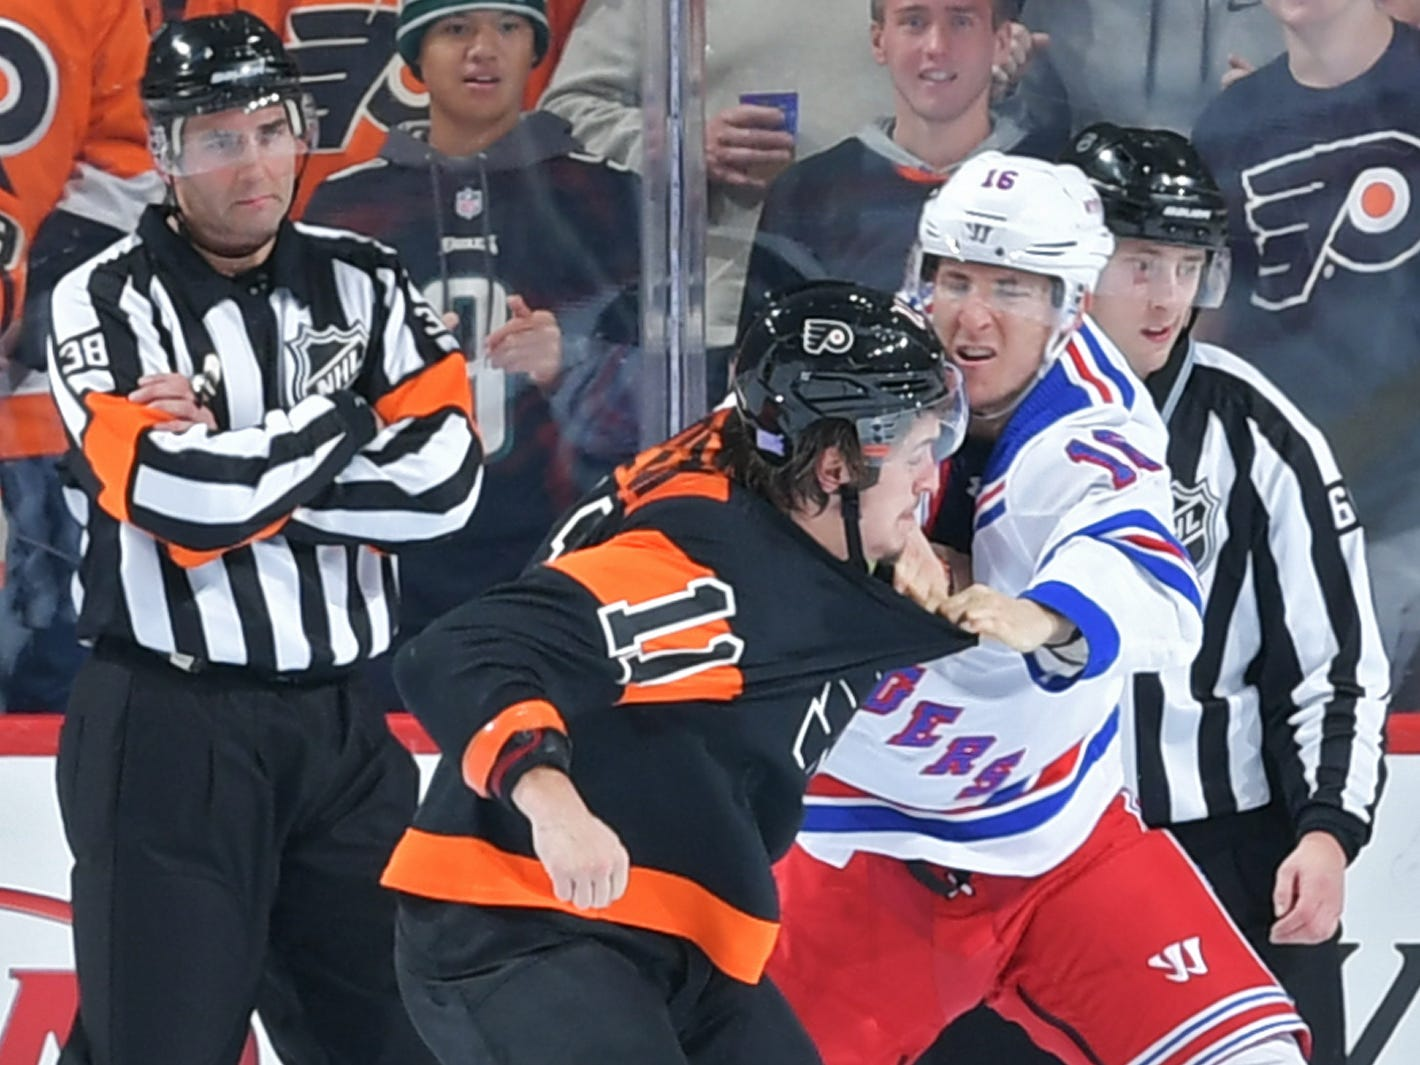 Nov. 23: Philadelphia Flyers' Travis Konecny vs. New York Rangers' Ryan Strome